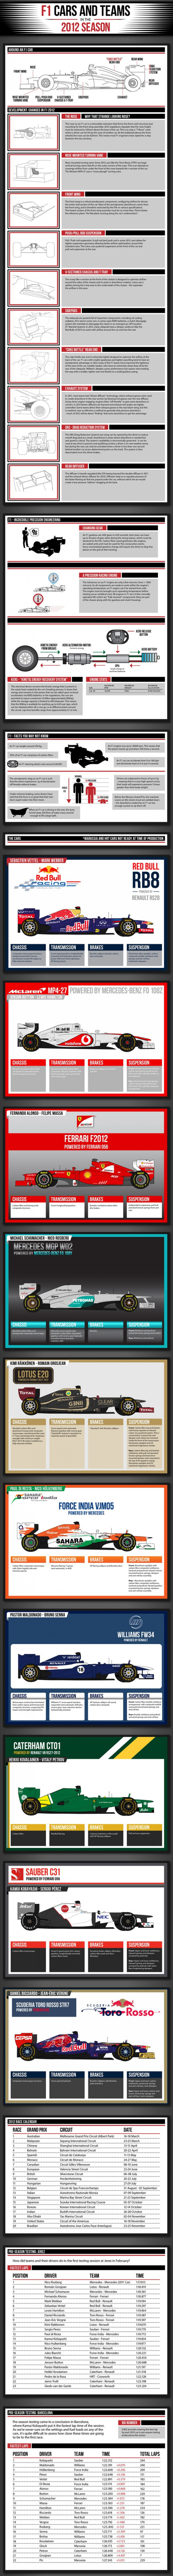 F1 Cars & Teams in the 2012 Season Infographic